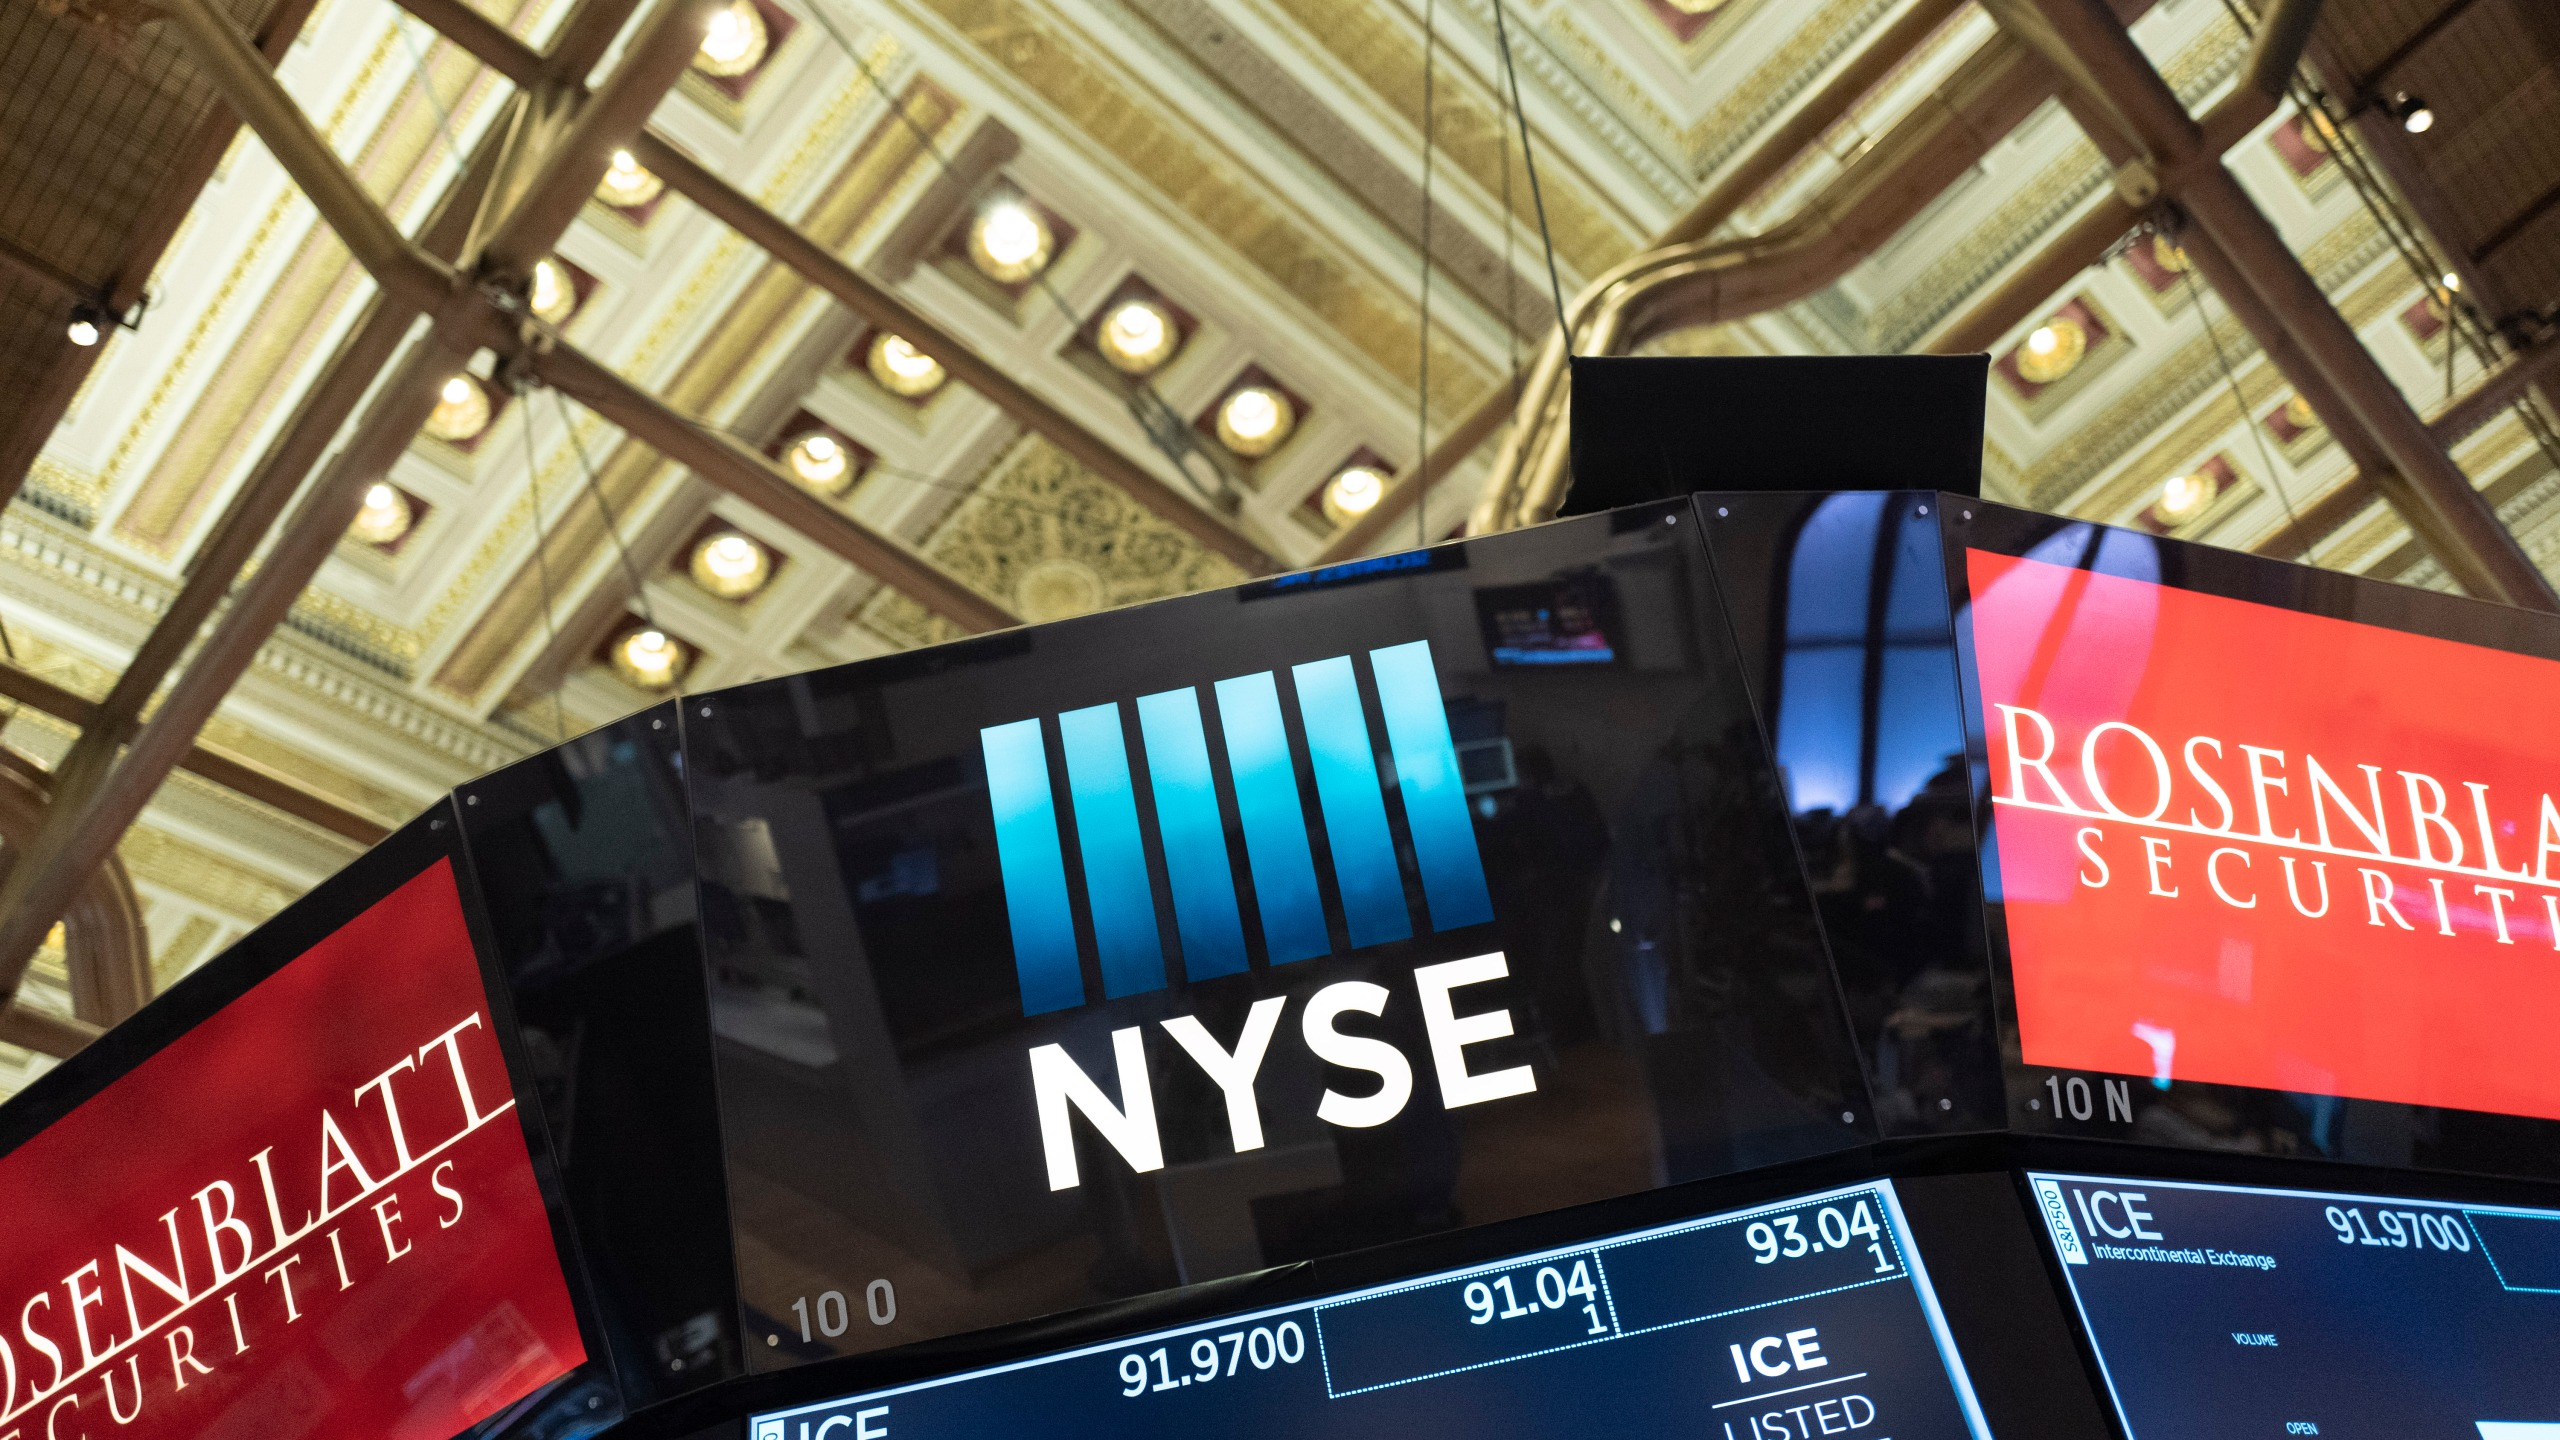 Electronic screens are displayed at the New York Stock Exchange, Wednesday, Feb. 26, 2020. (AP Photo/Mark Lennihan)